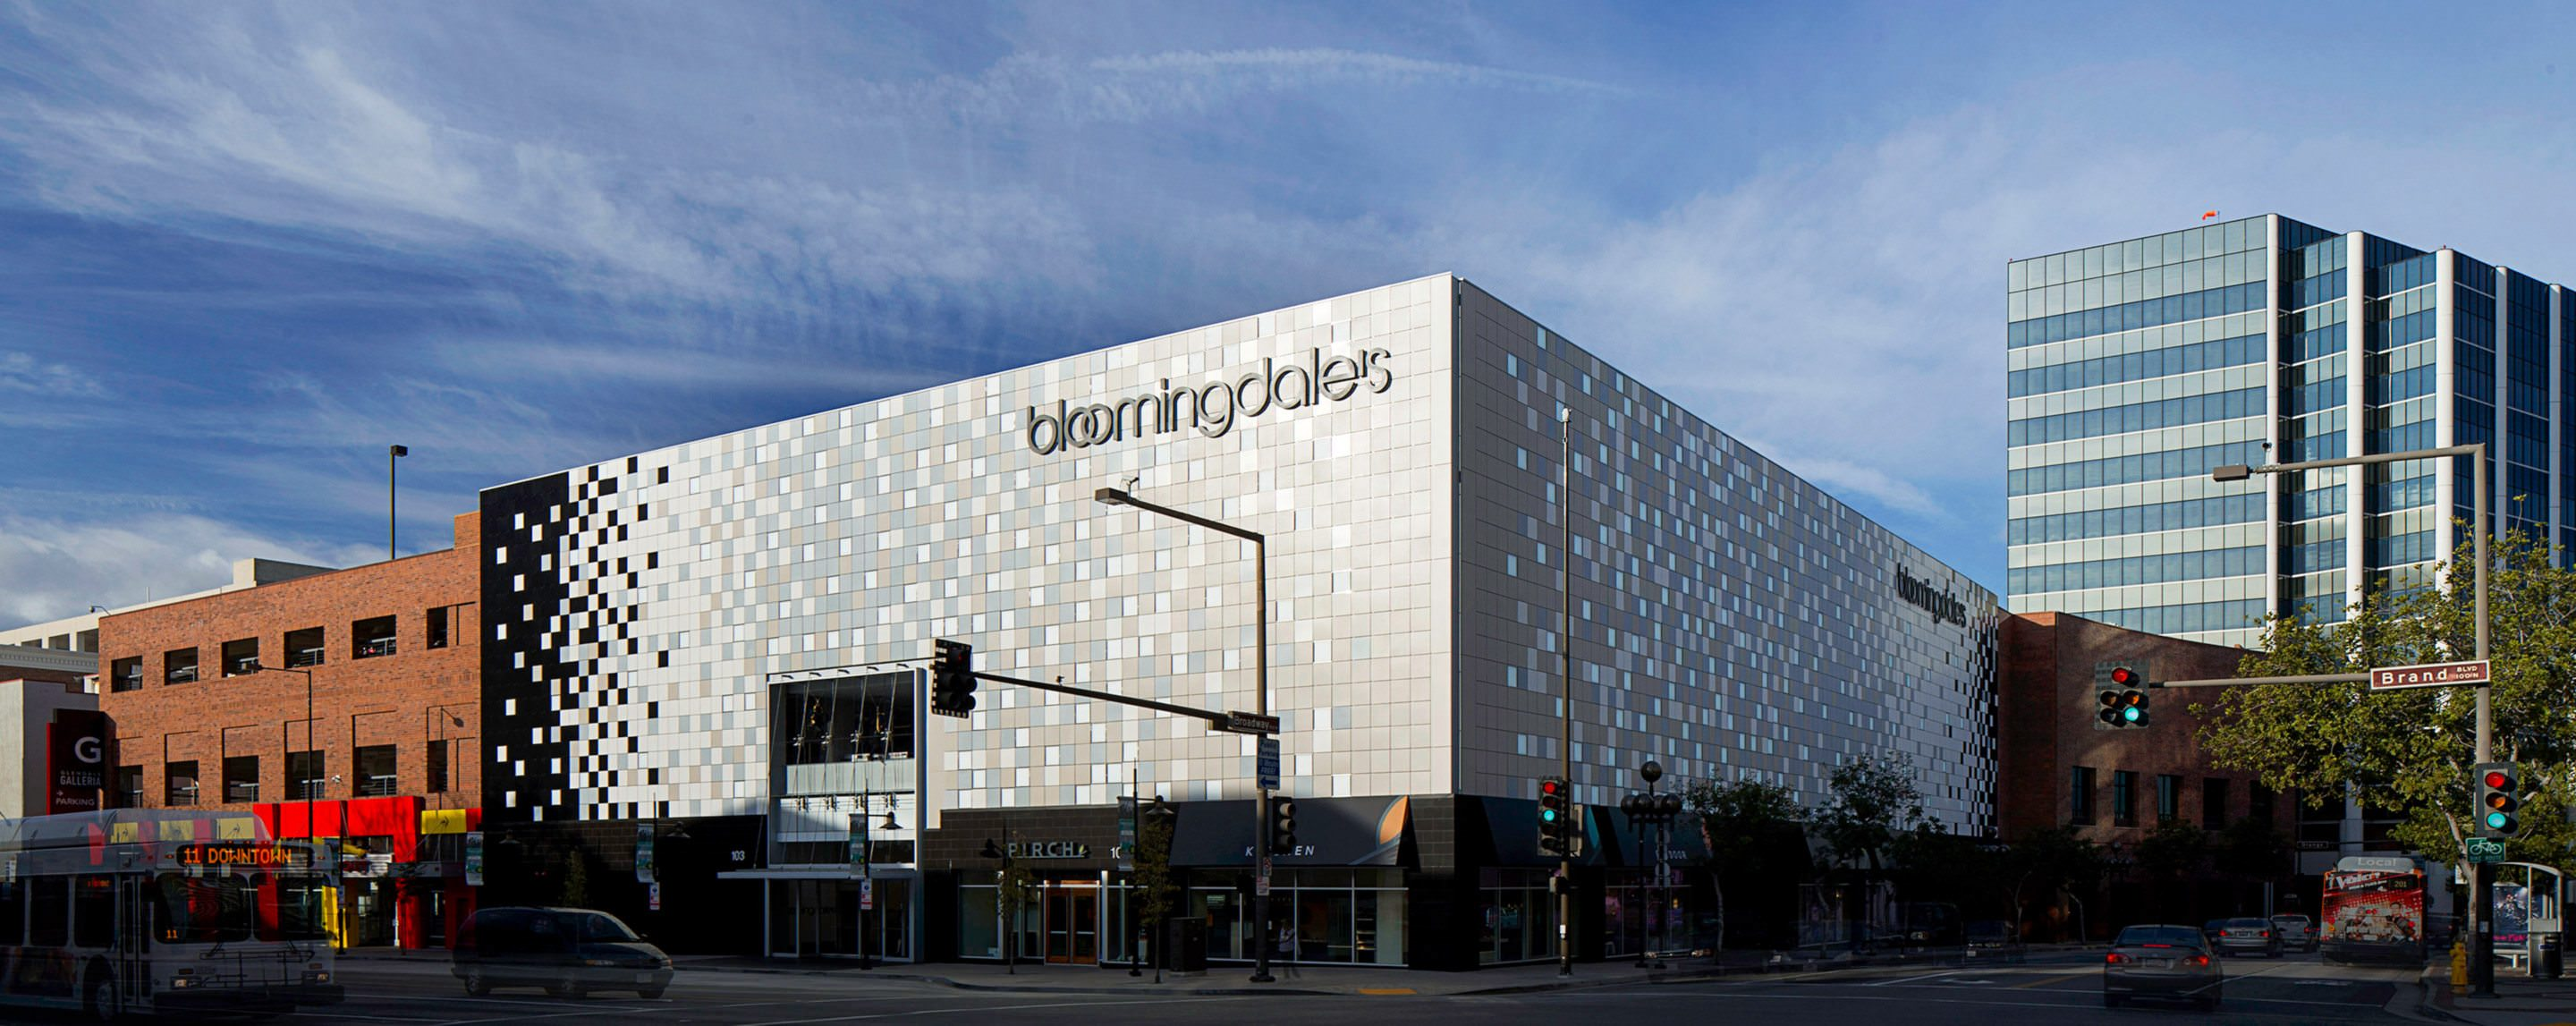 On a sunny day, the Bloomingdales outside of the Galleria Office Tower draws attention from cars passing by.